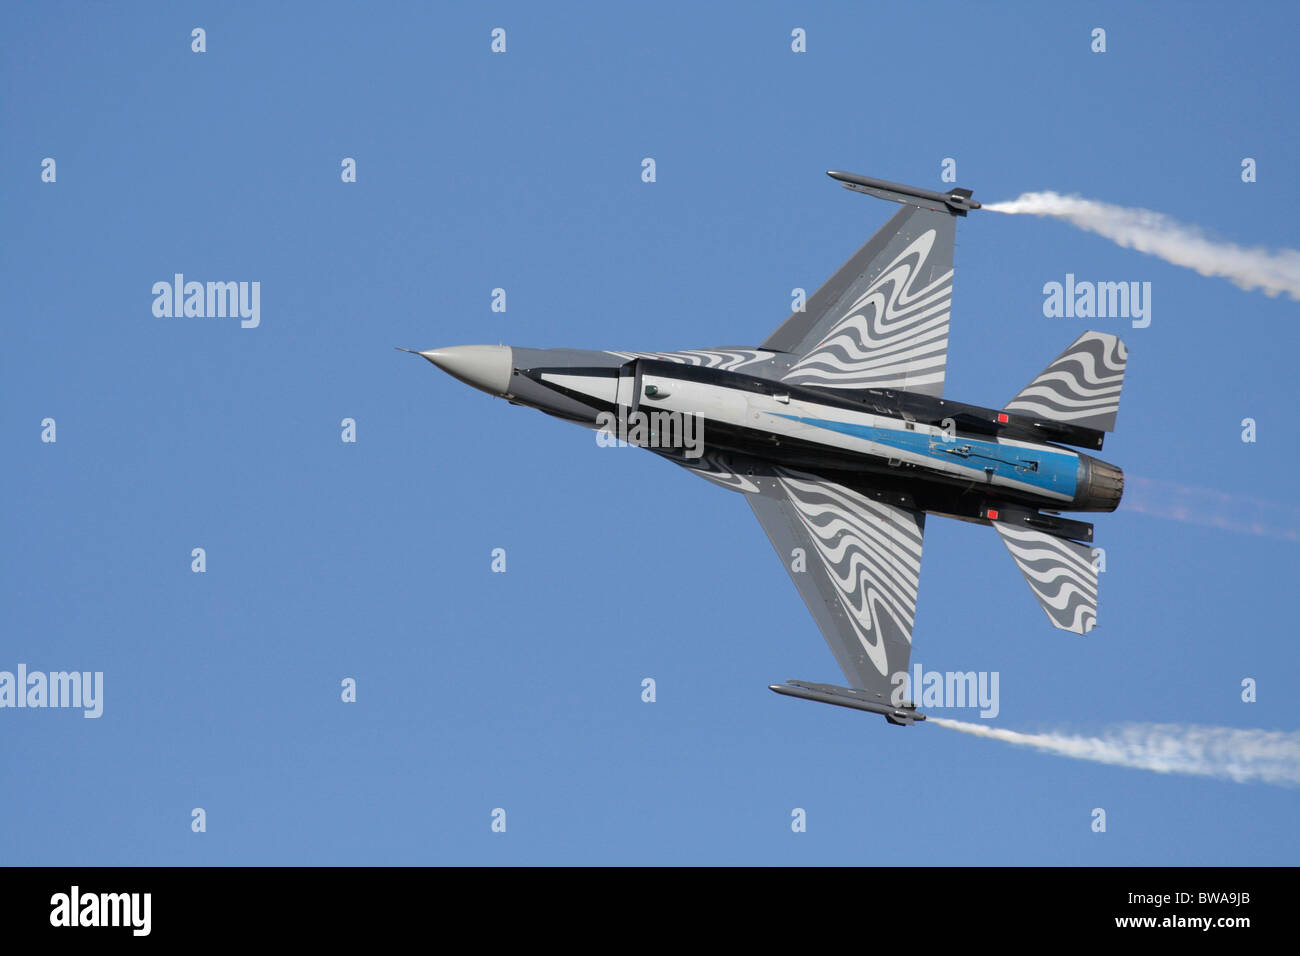 Belgian F-16 fighter jet plane flying in the sky during an air display. Off centre composition with copy space Stock Photo